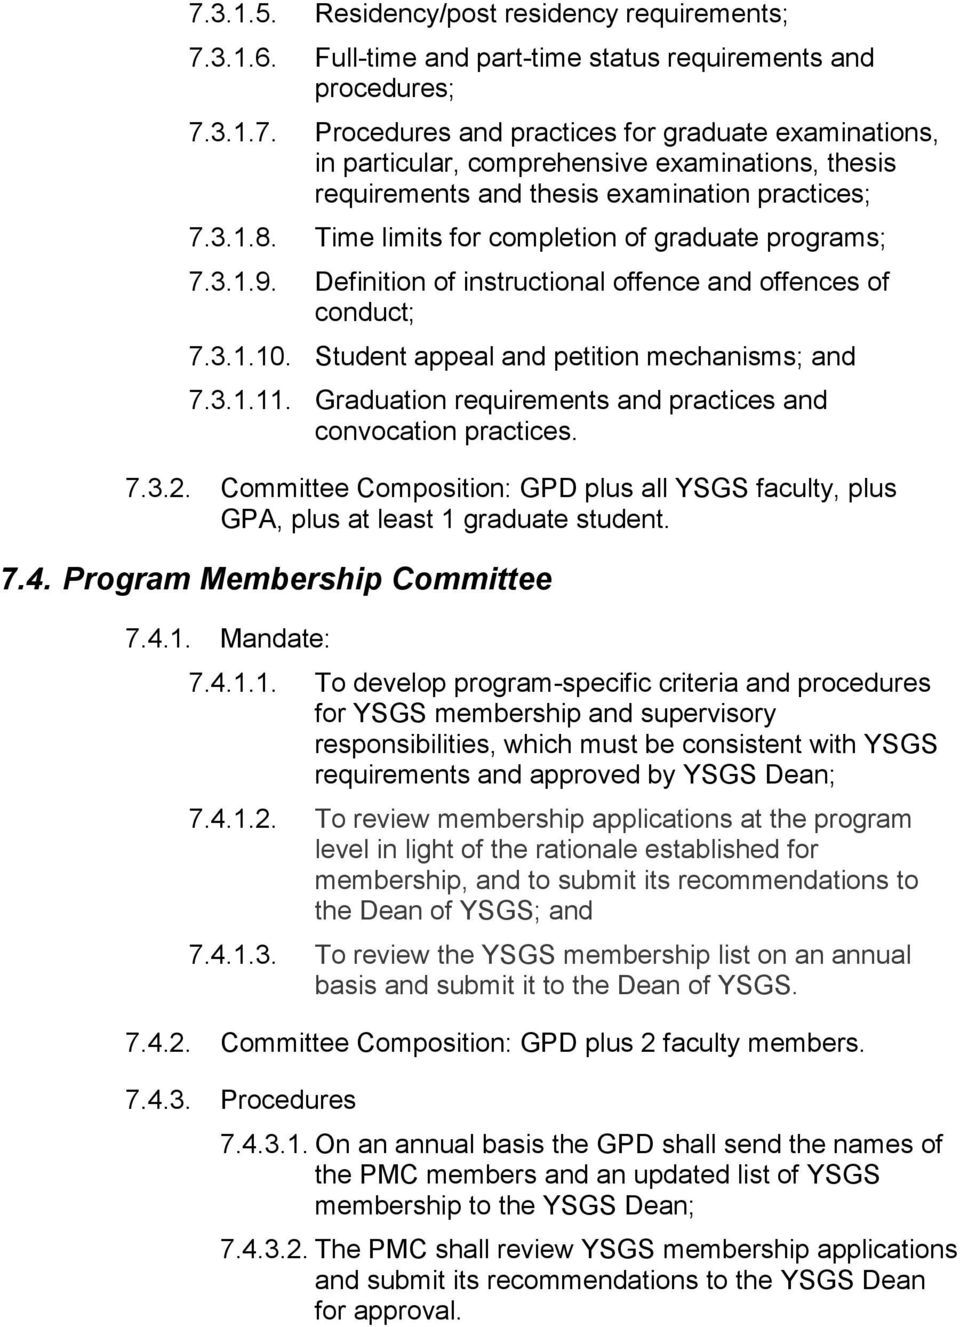 Graduation requirements and practices and convocation practices. 7.3.2. Committee Composition: GPD plus all YSGS faculty, plus GPA, plus at least 1 graduate student. 7.4.